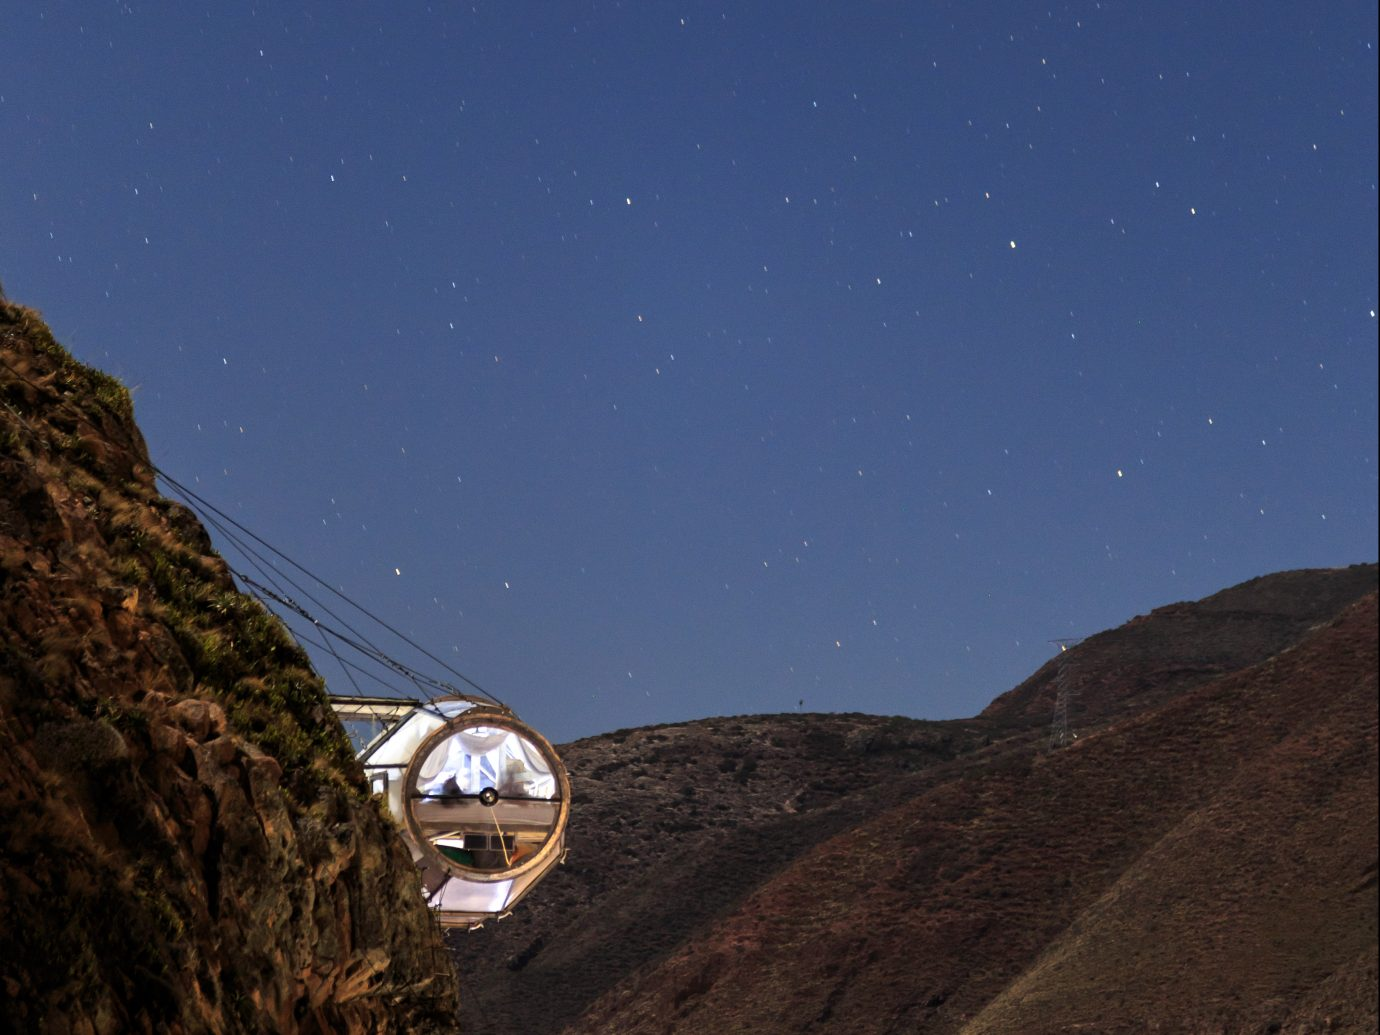 Hanging pod hotel room on side of mountain at night